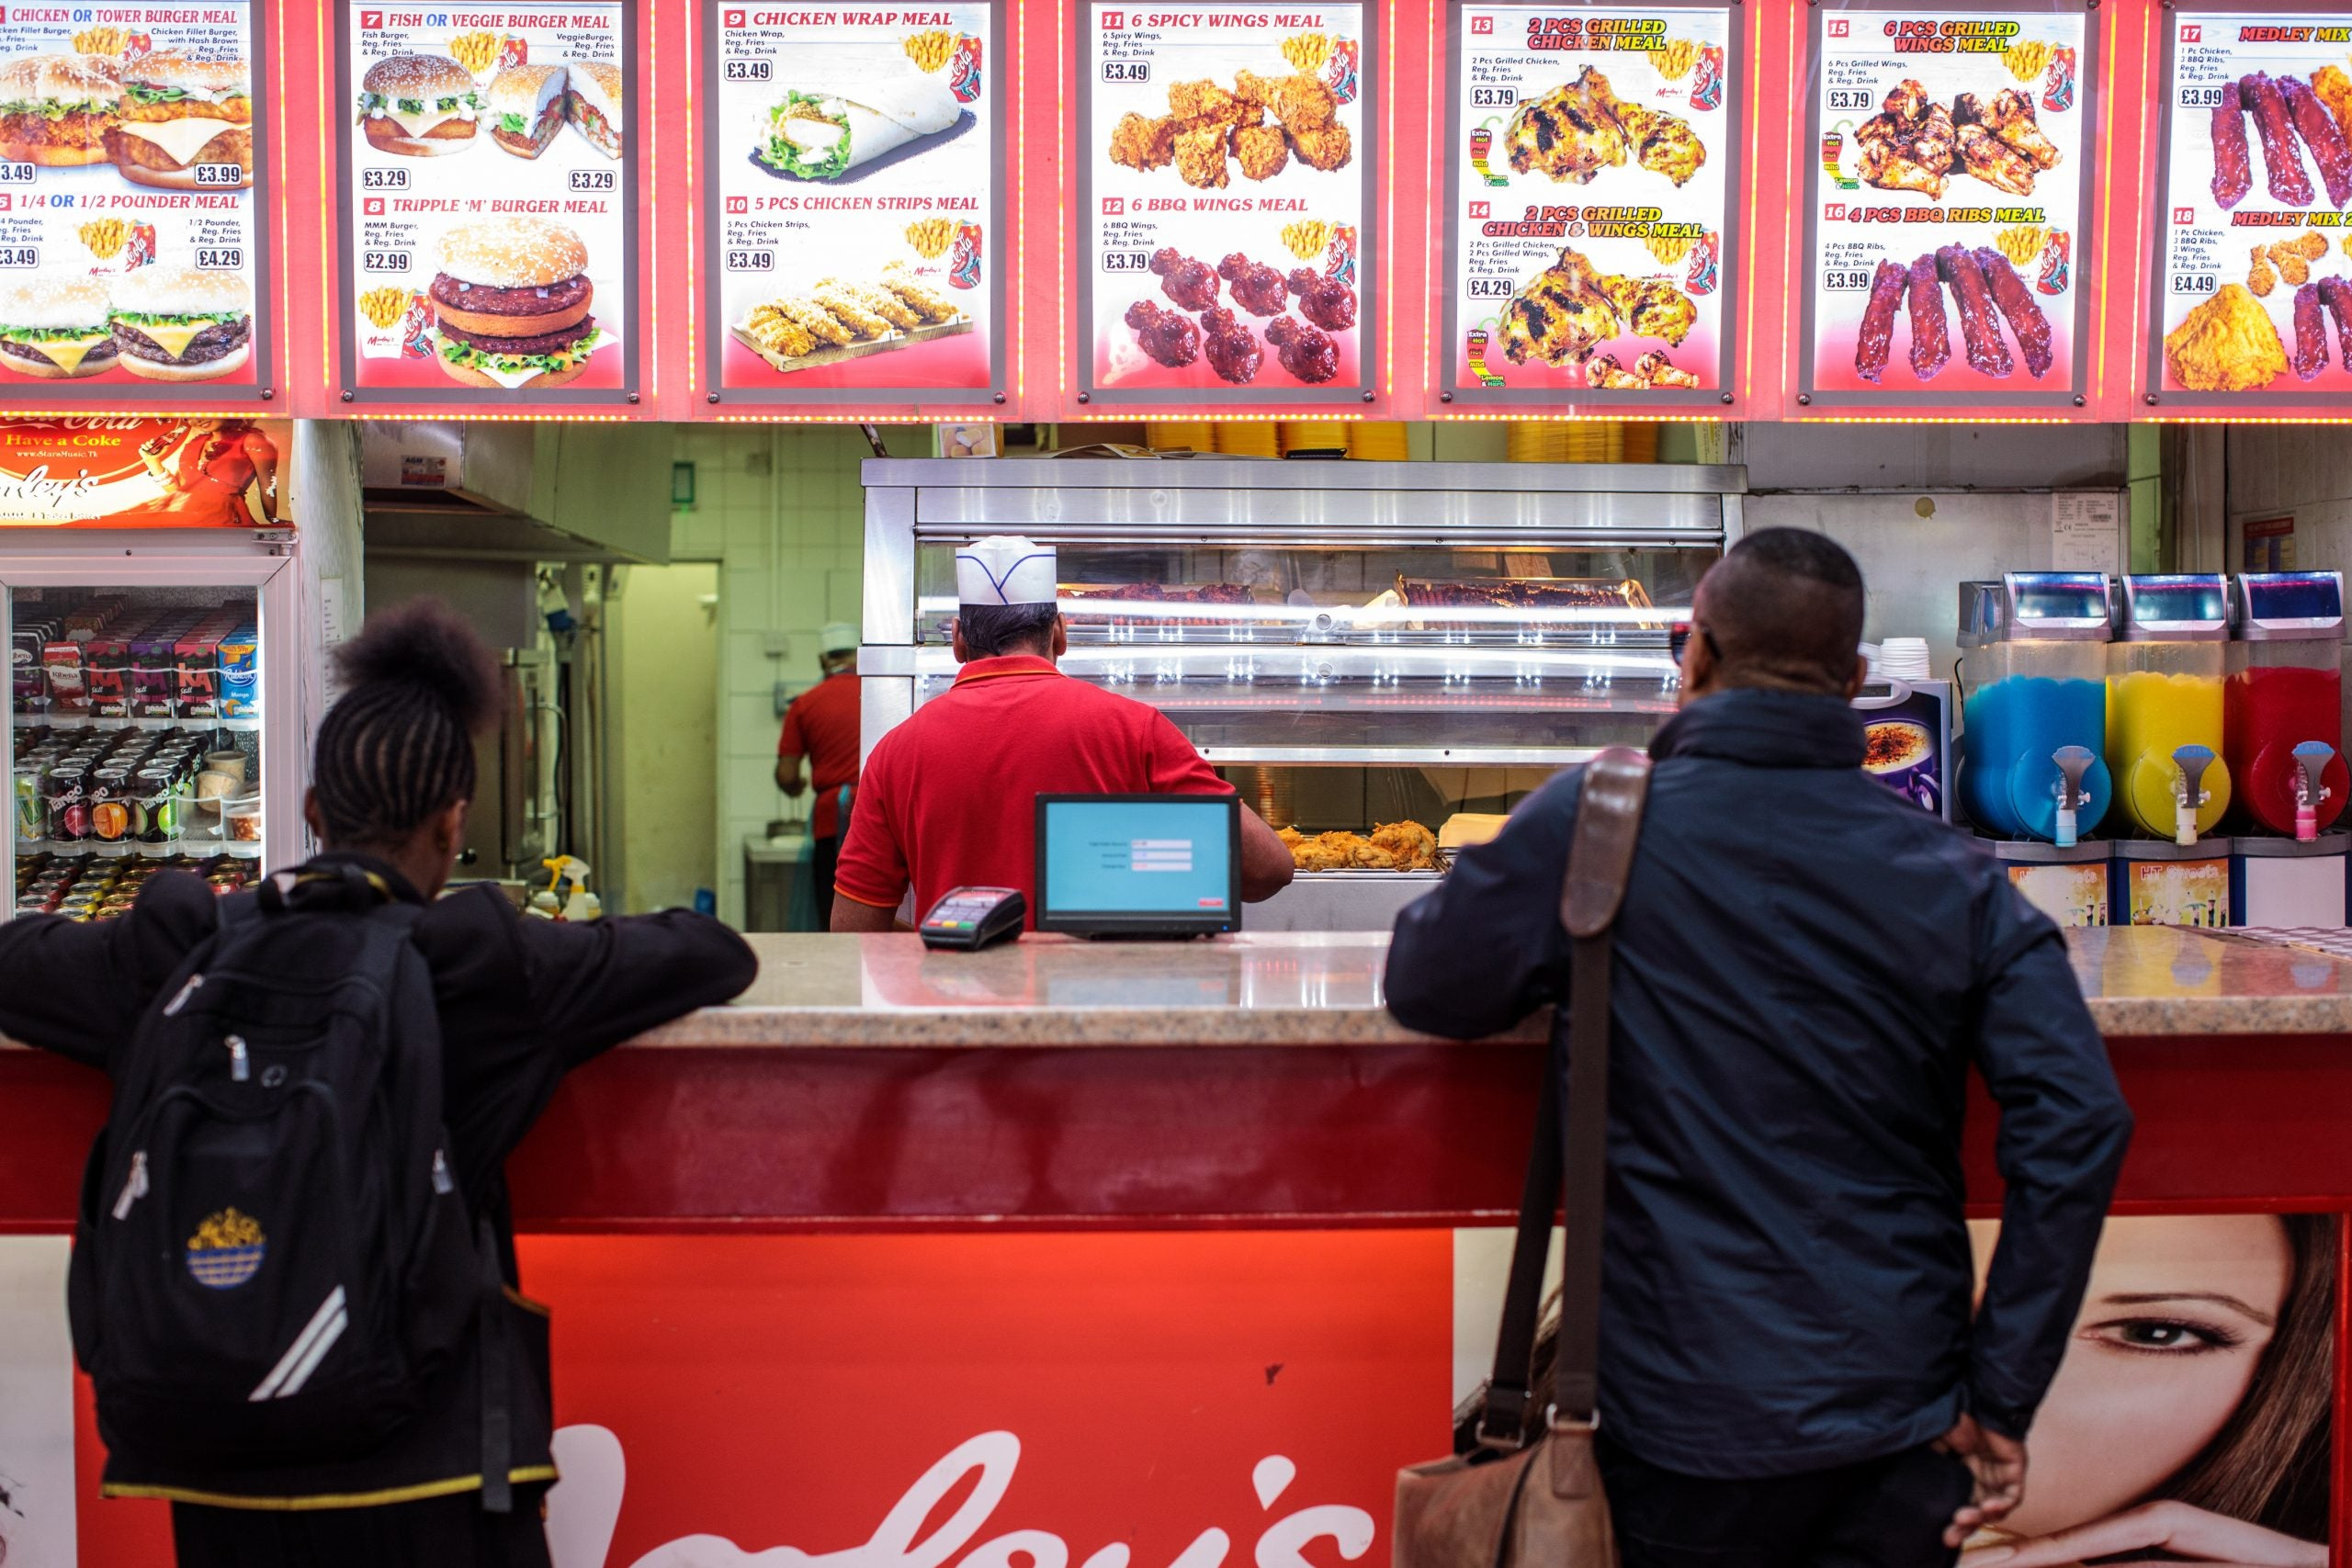 Gentrification is nothing new – but posh chicken shops are an affront to working-class culture